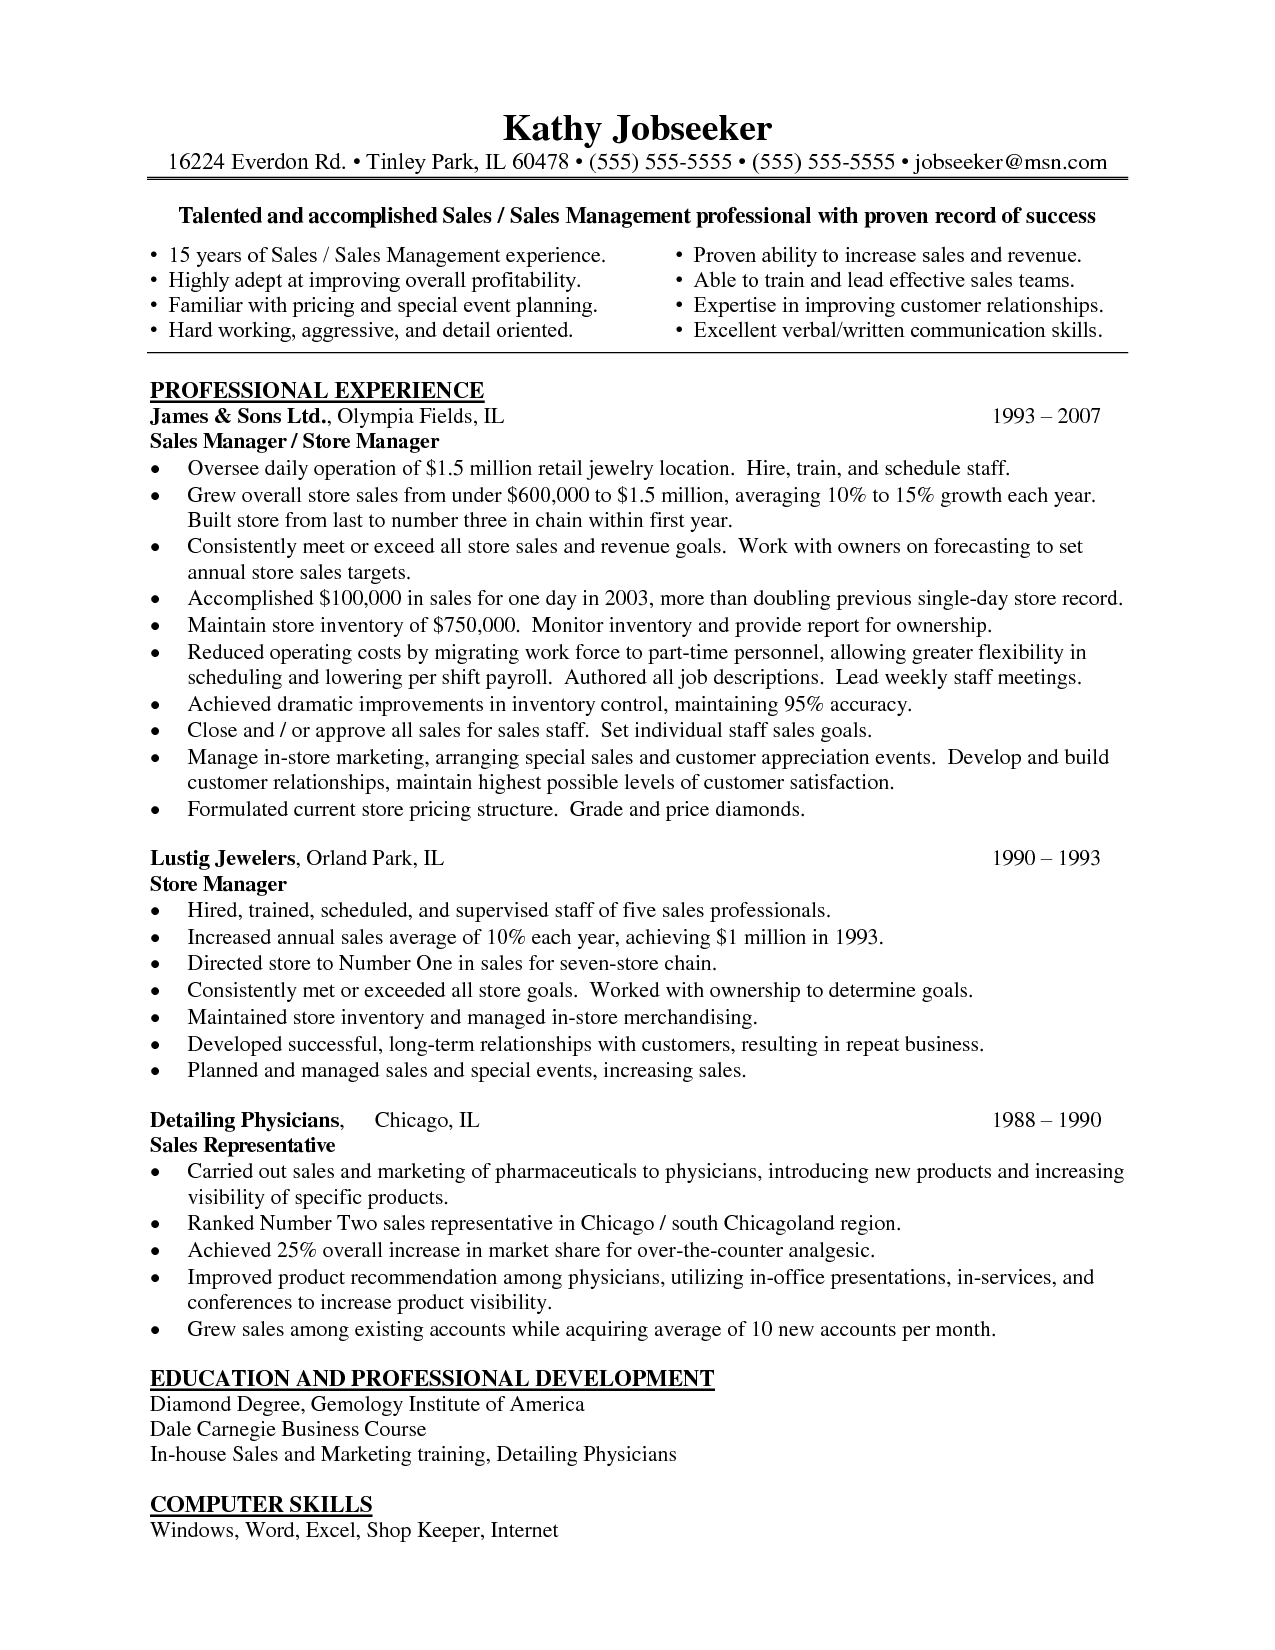 Resume Examples For Retail Store Manager | Sample Cover Letter For Retail  Management Job 4  Retail Management Resume Examples And Samples